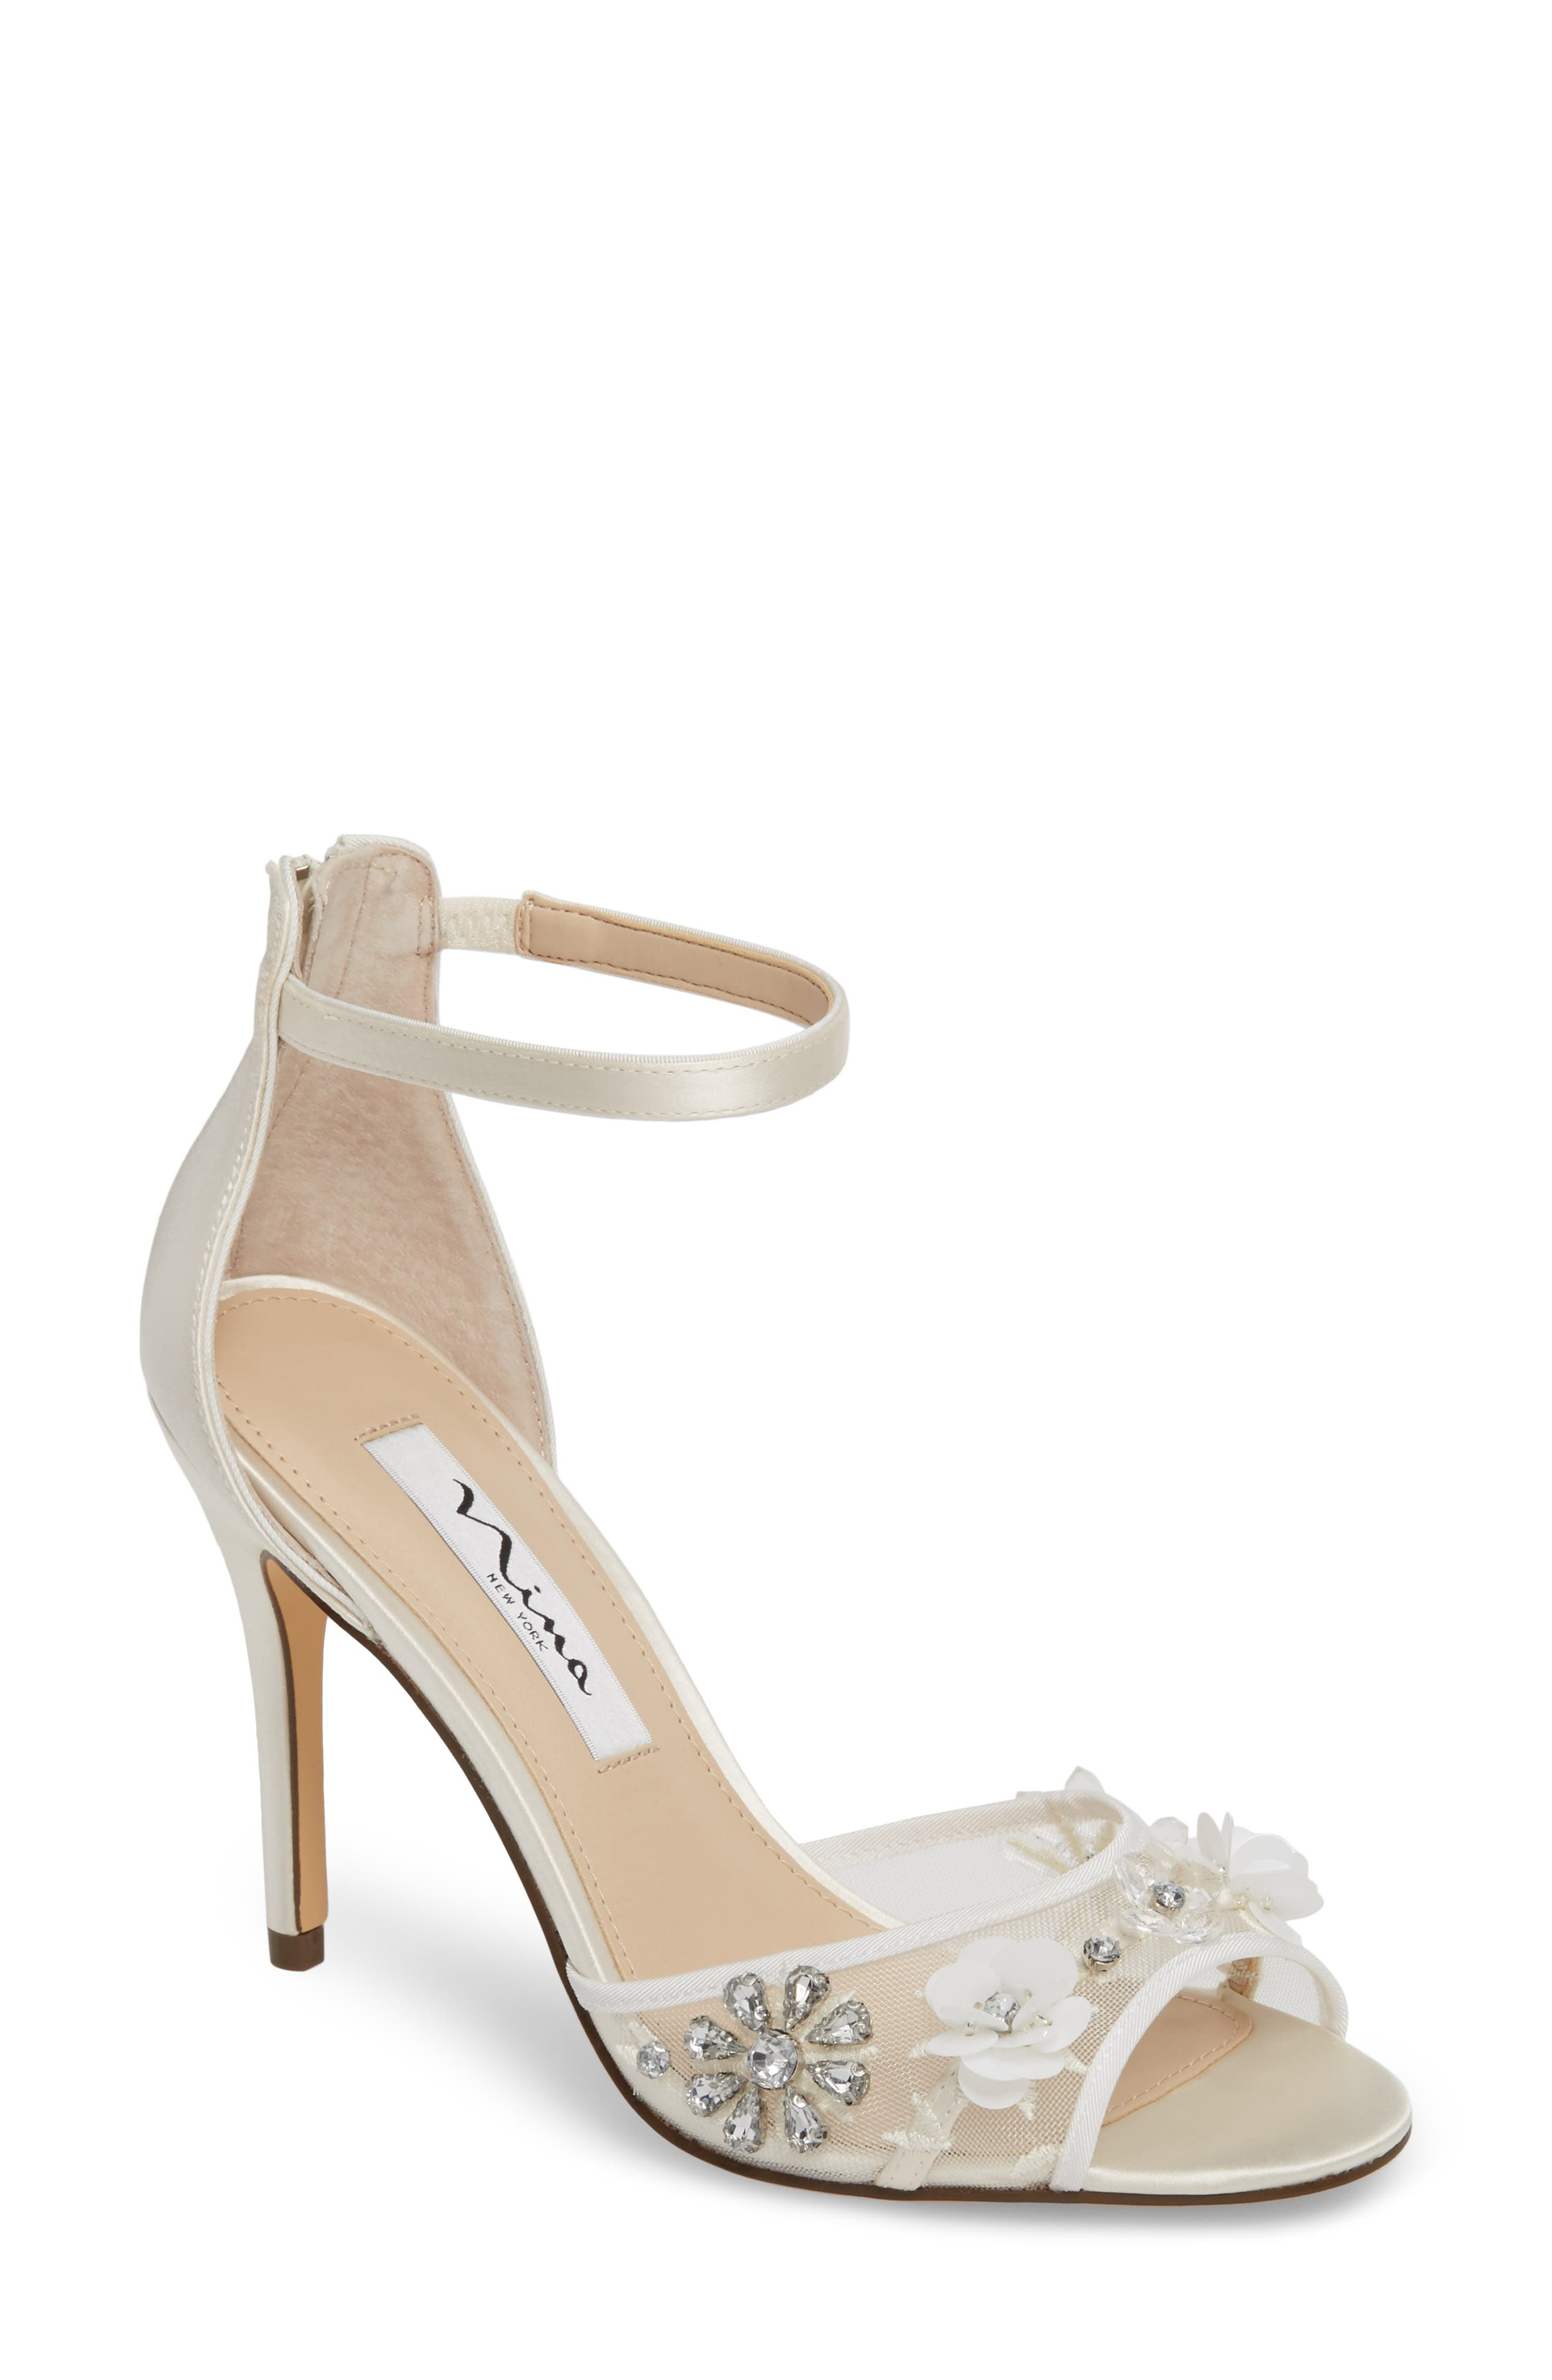 Clarity Ankle Strap Sandal,                             Main thumbnail 1, color,                             IVORY SATIN